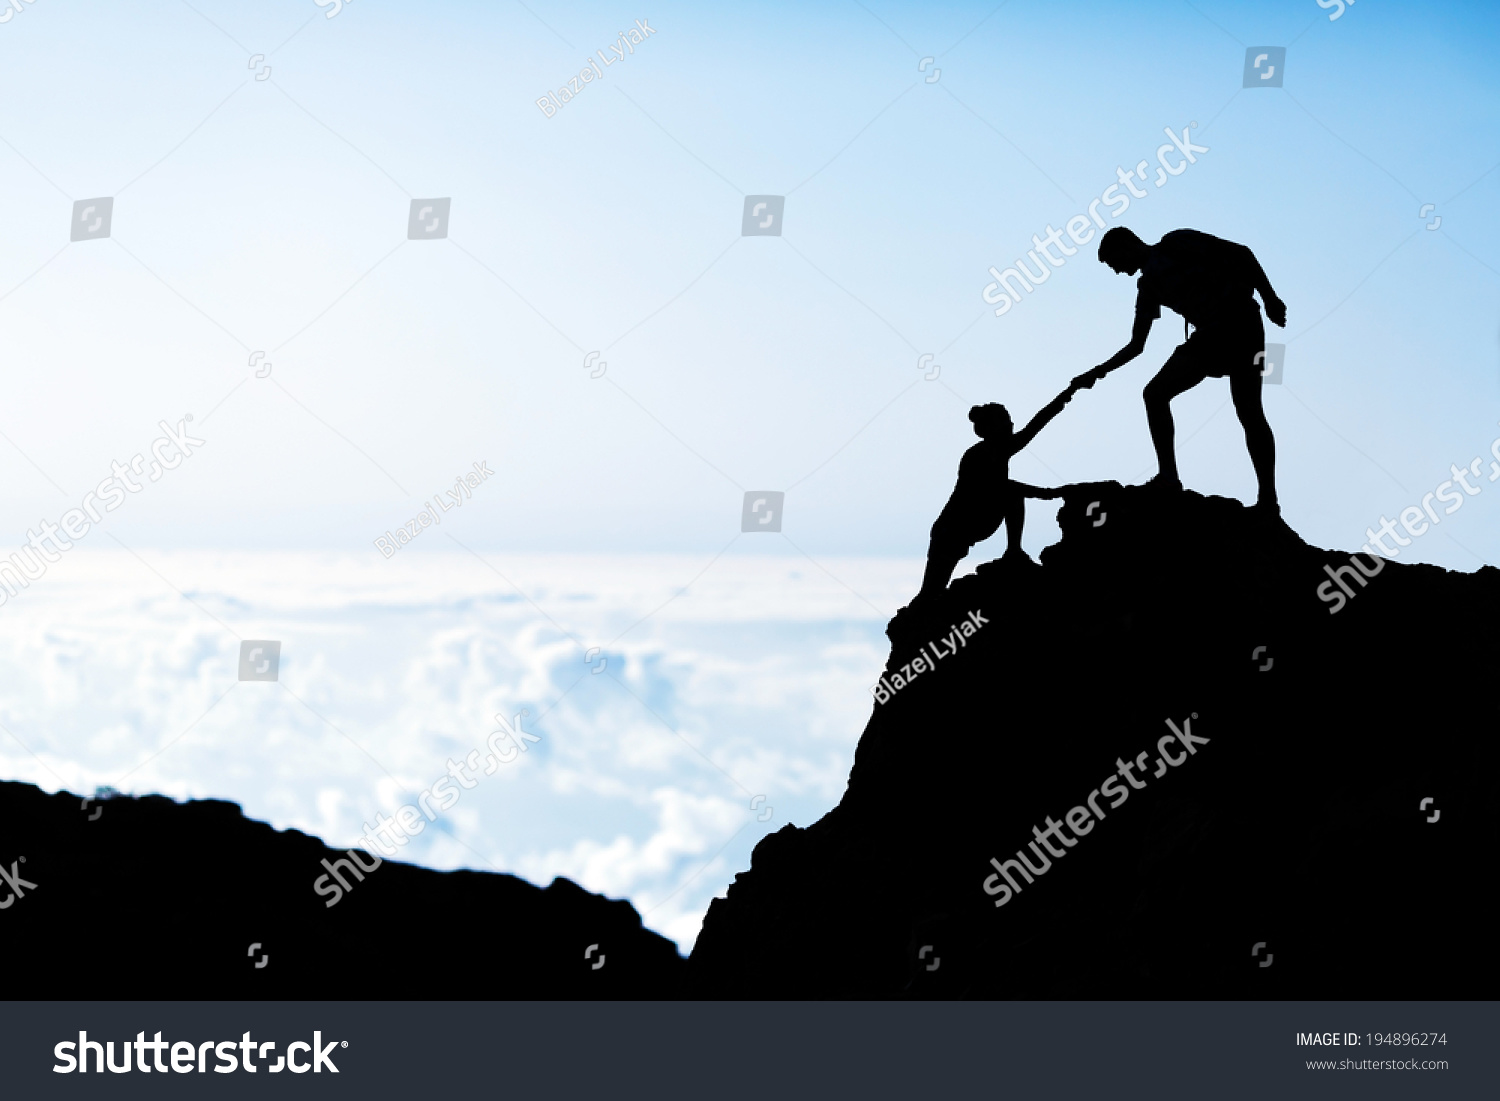 royalty couple hiking teamwork partners help  couple hiking teamwork partners help each other silhouette in mountains motivation and inspiration man